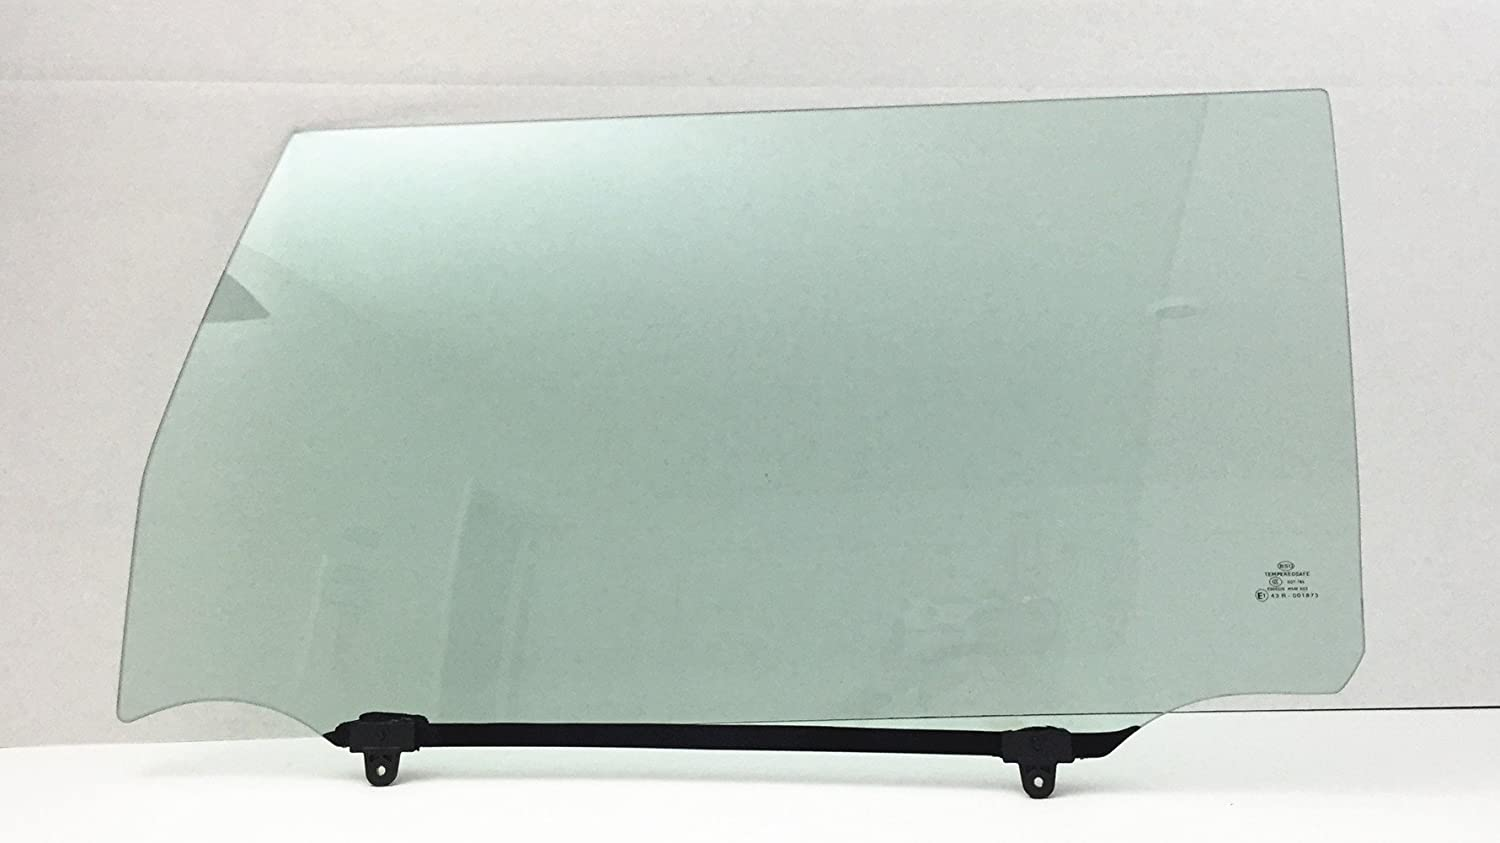 NAGD Compatible with 2007-2014 Toyota FJ Cruiser Passenger Side Right Rear Access Door Window Glass